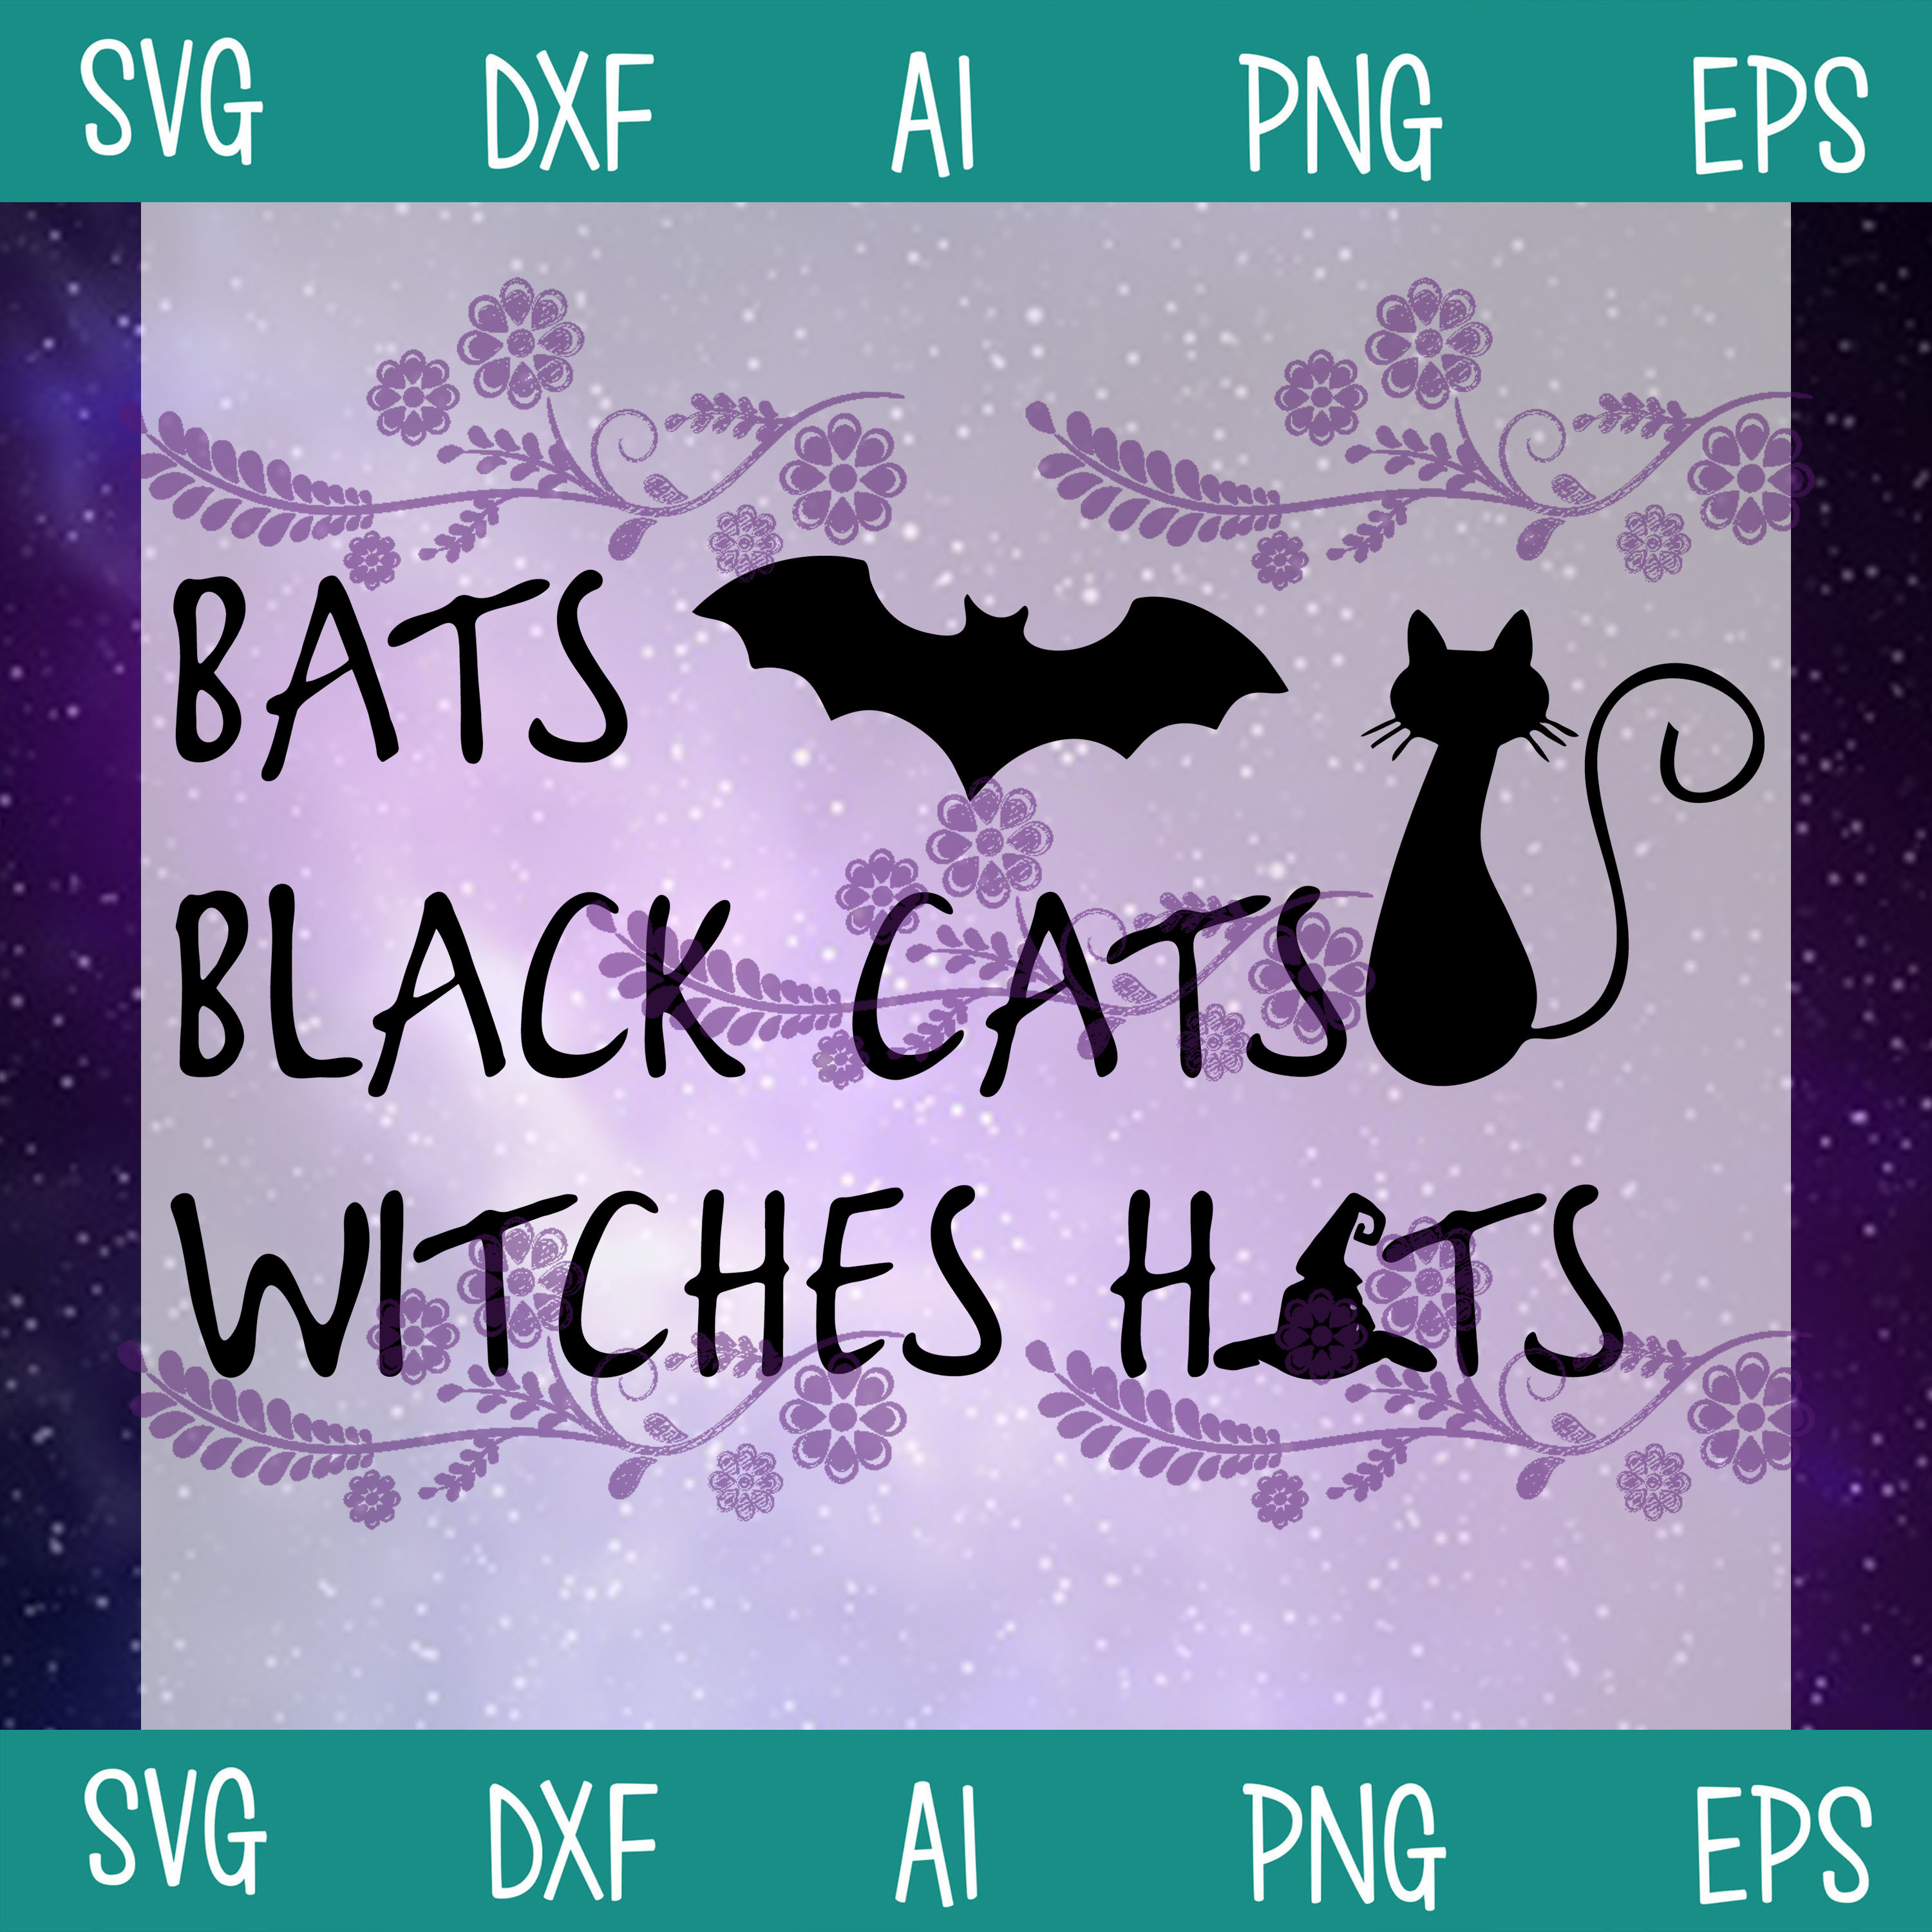 Bats Black Cats Witches Hats SVG, Halloween SVG, Cat SVG, Witches SVG, SVG, DXF,